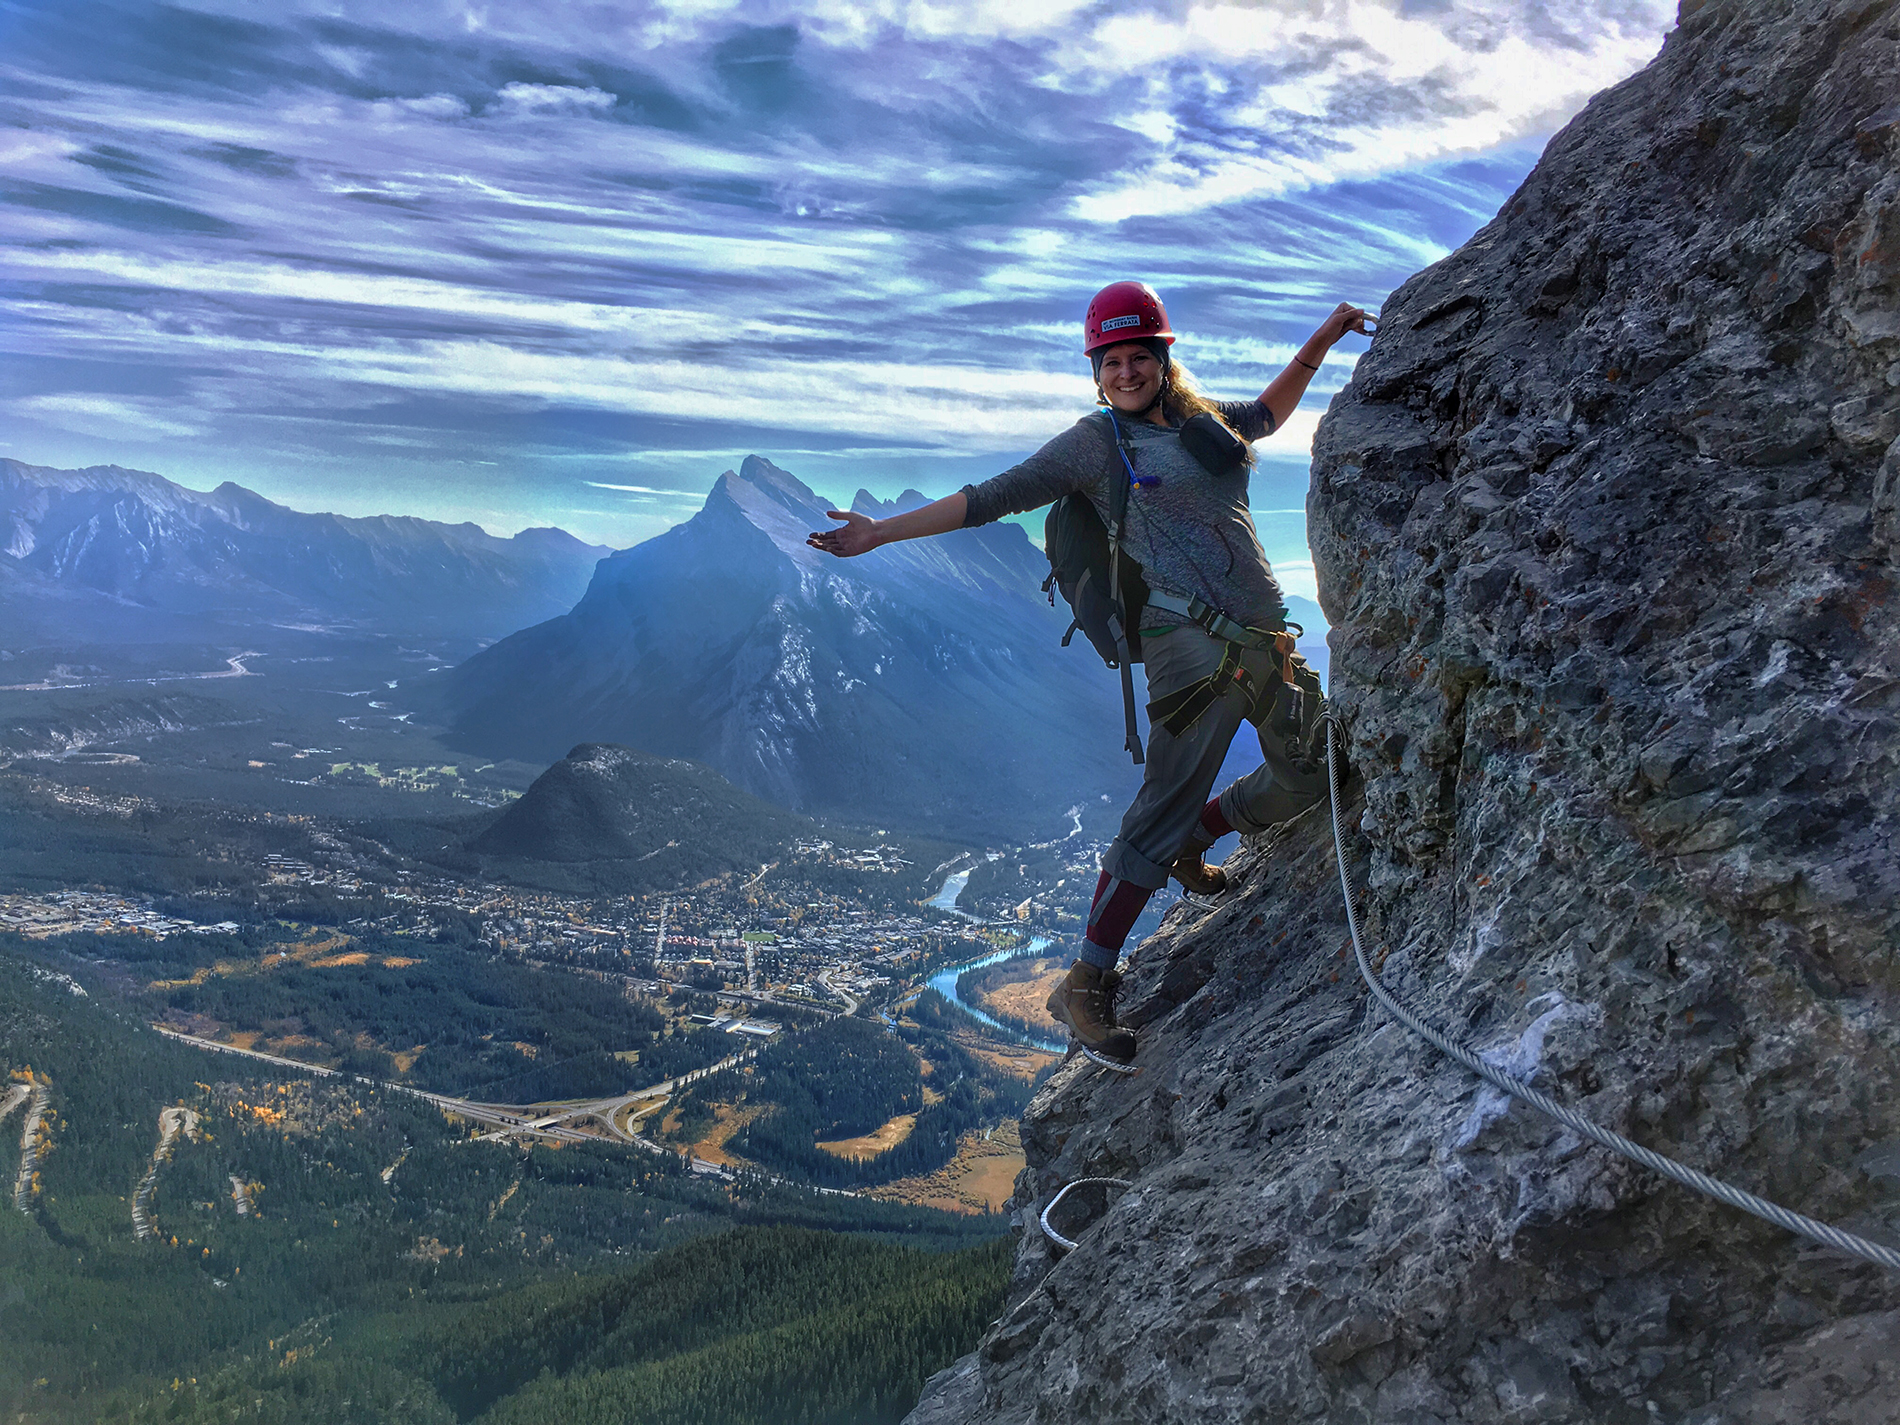 First time climber on Banff's Via Ferrata